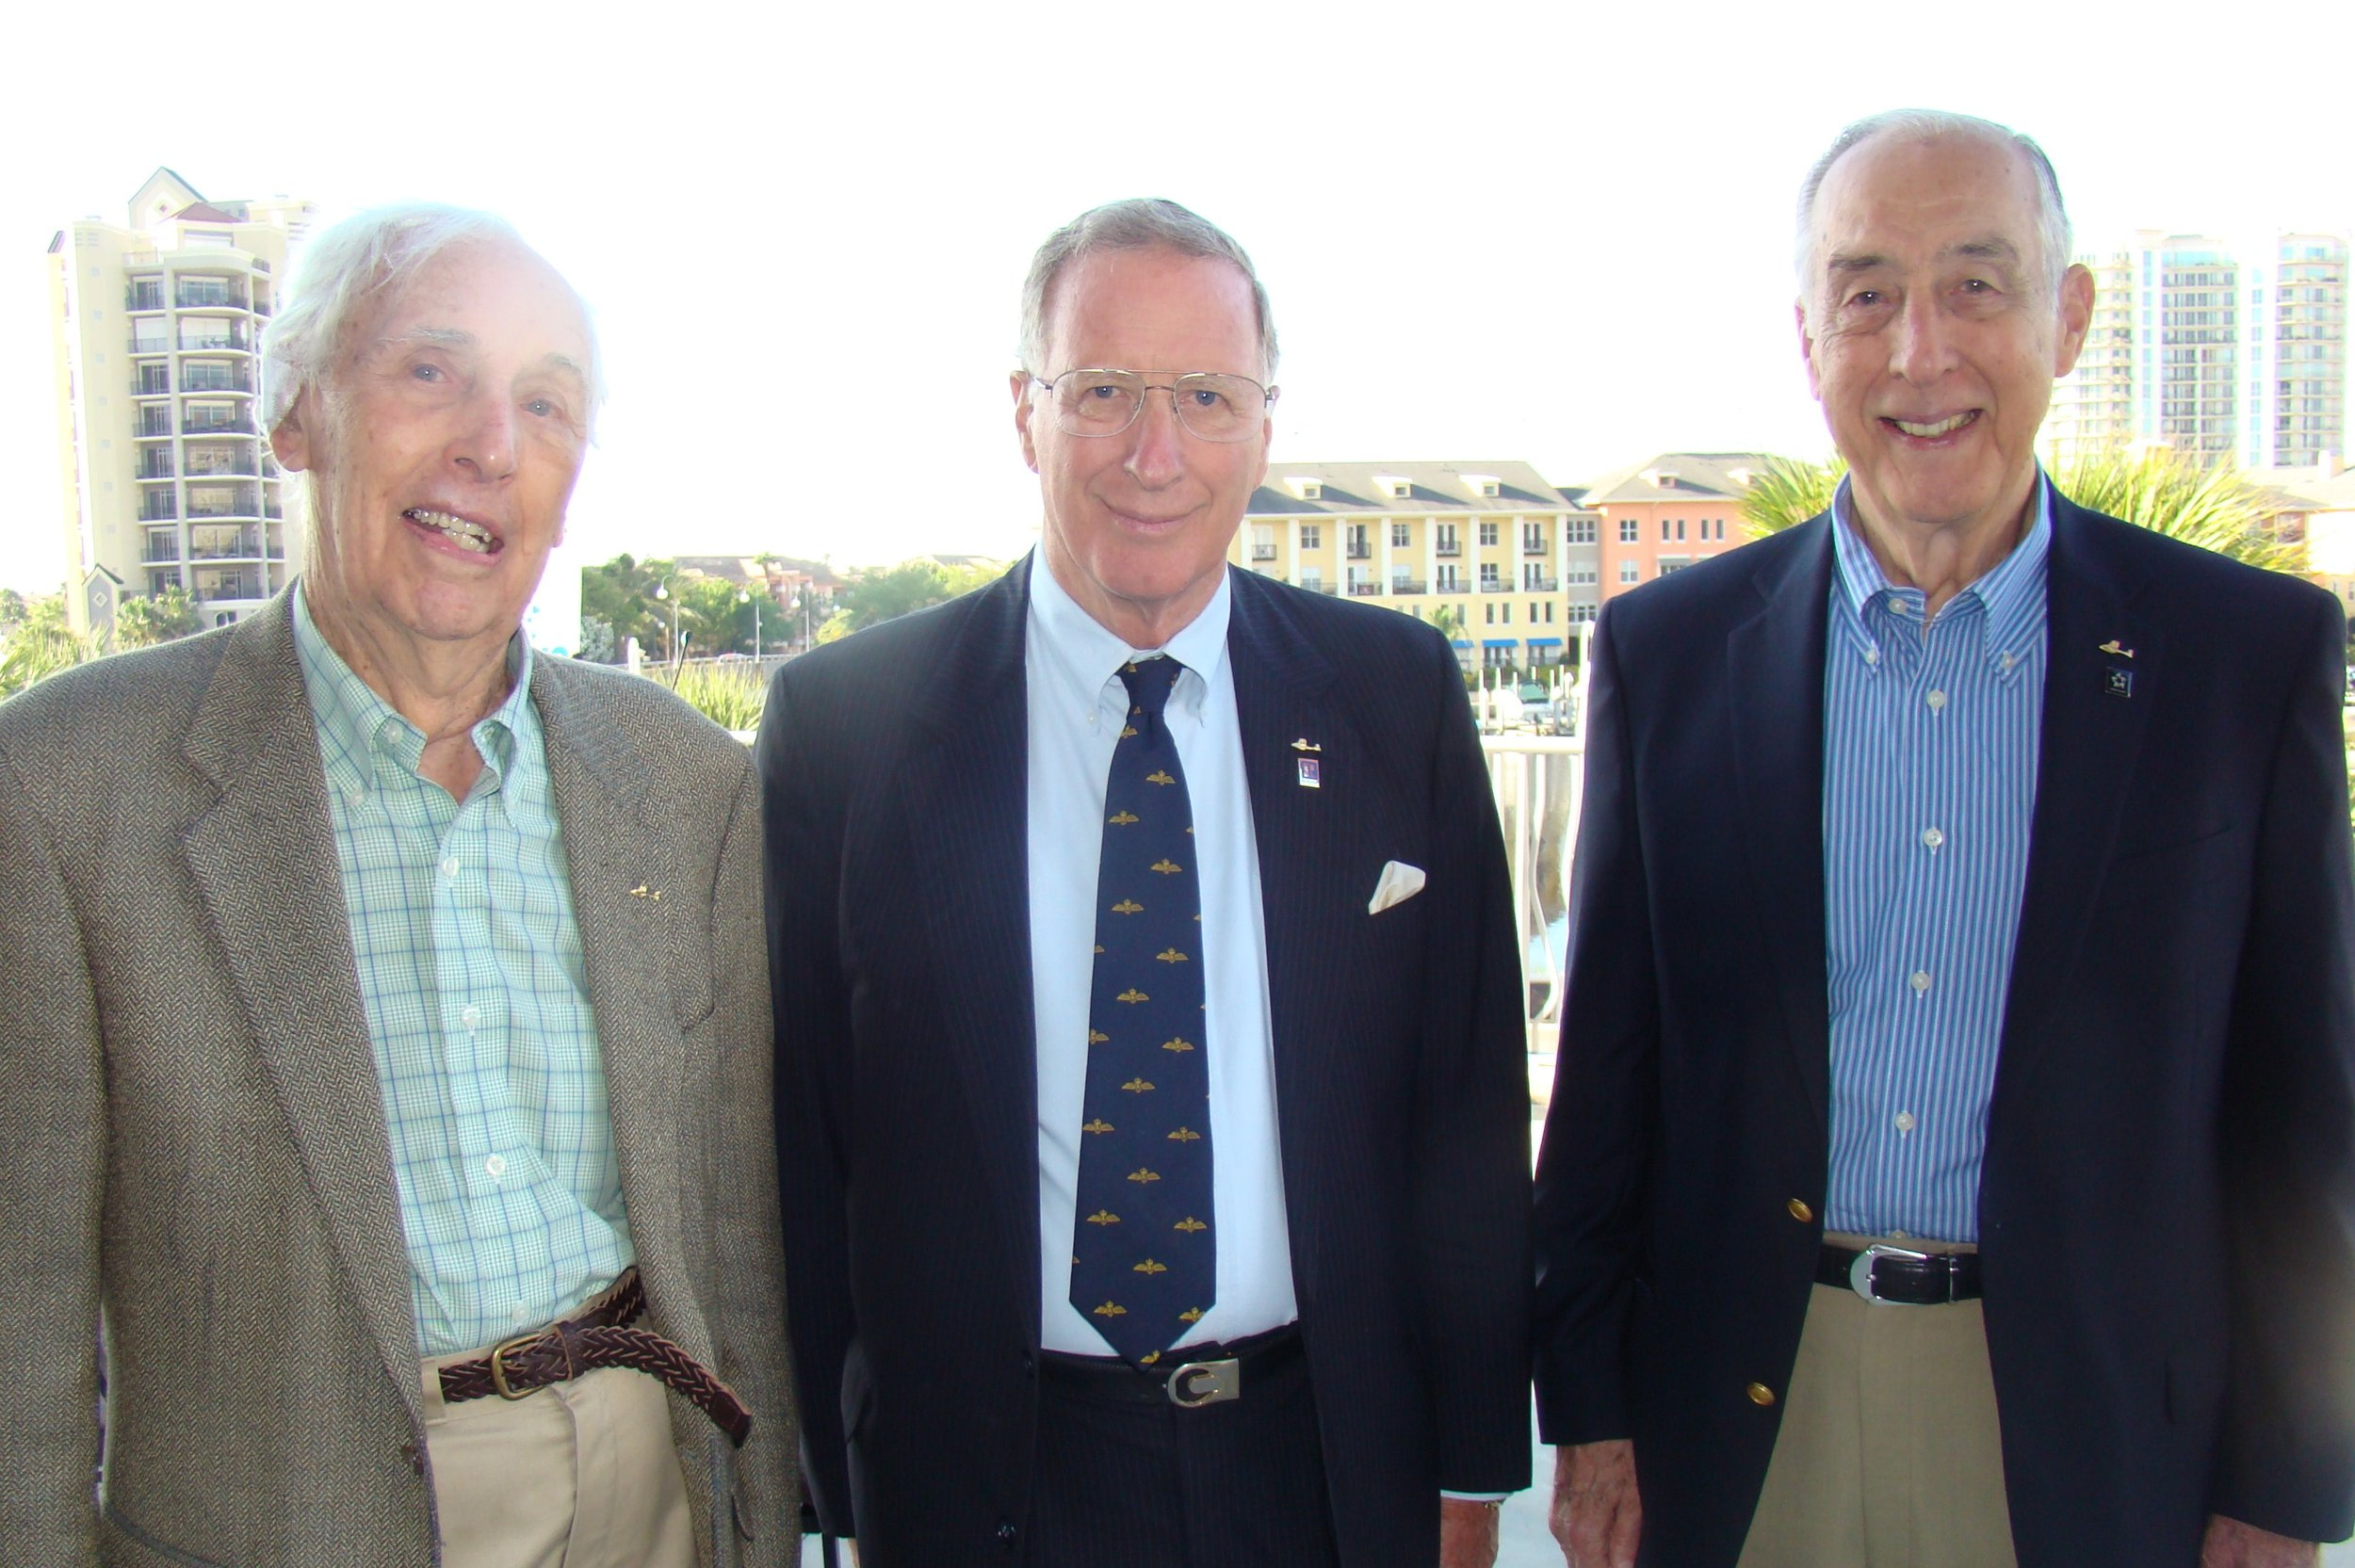 Bill Krusen, Colin Howgill & Dick Newton, 13 Apr '11.JPG